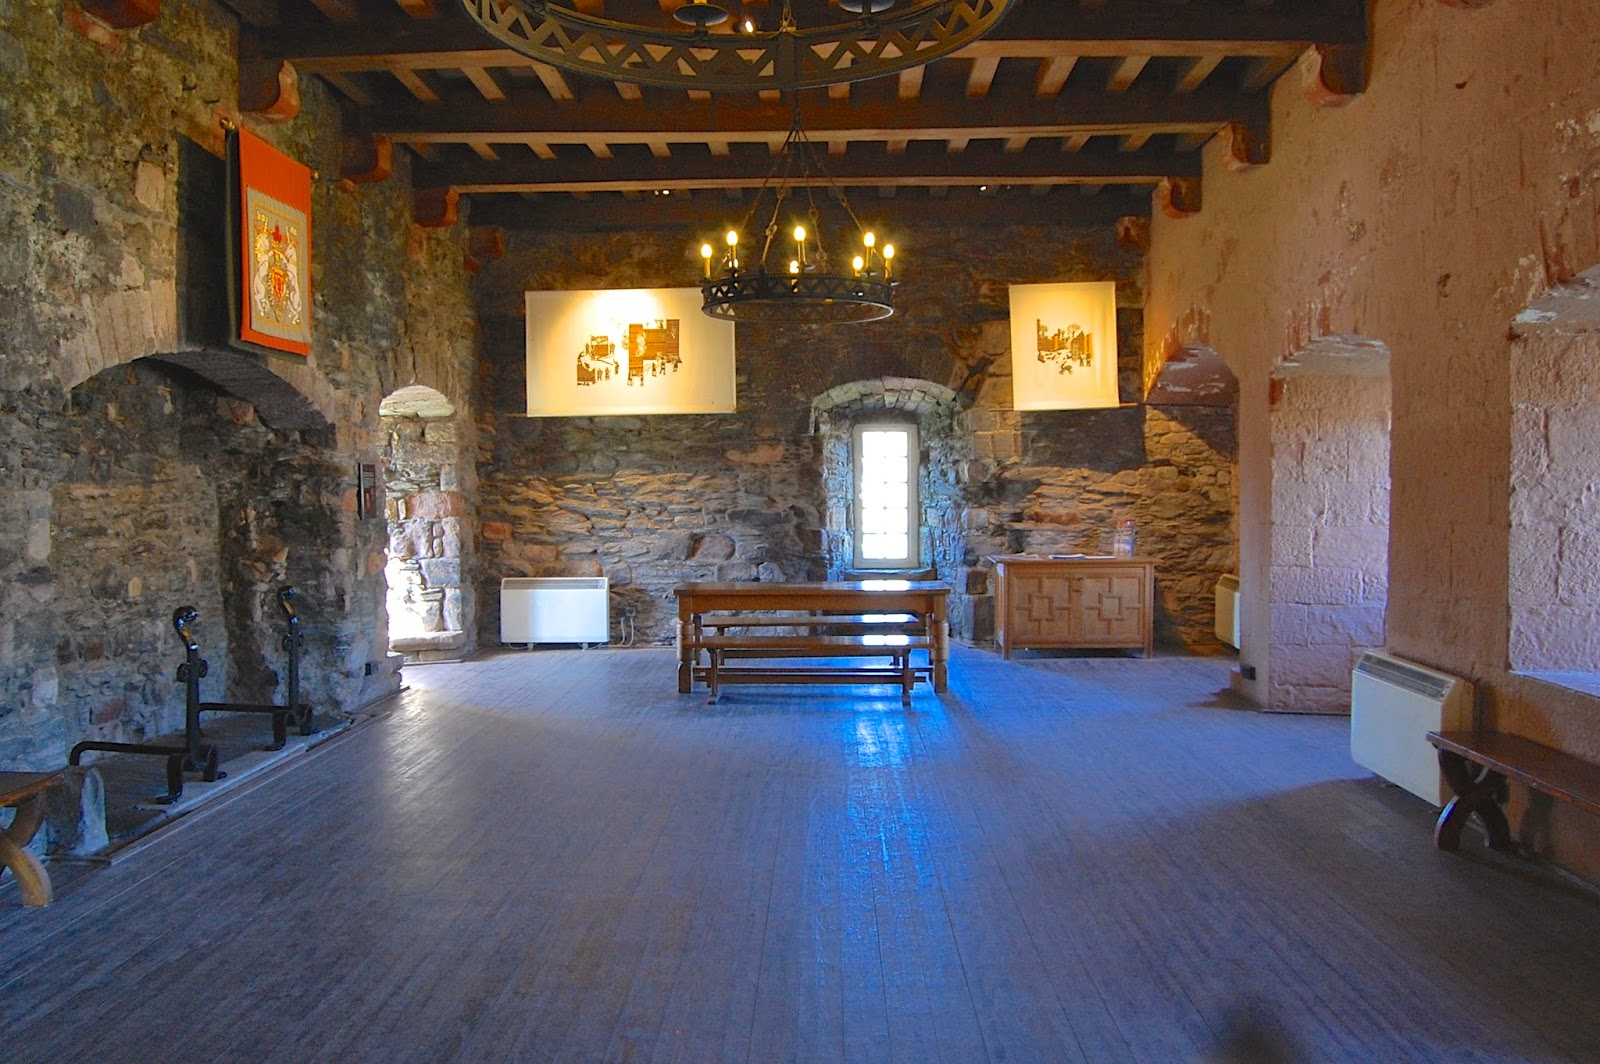 Reconstructed great hall in the Rothesay Castle gatehouse